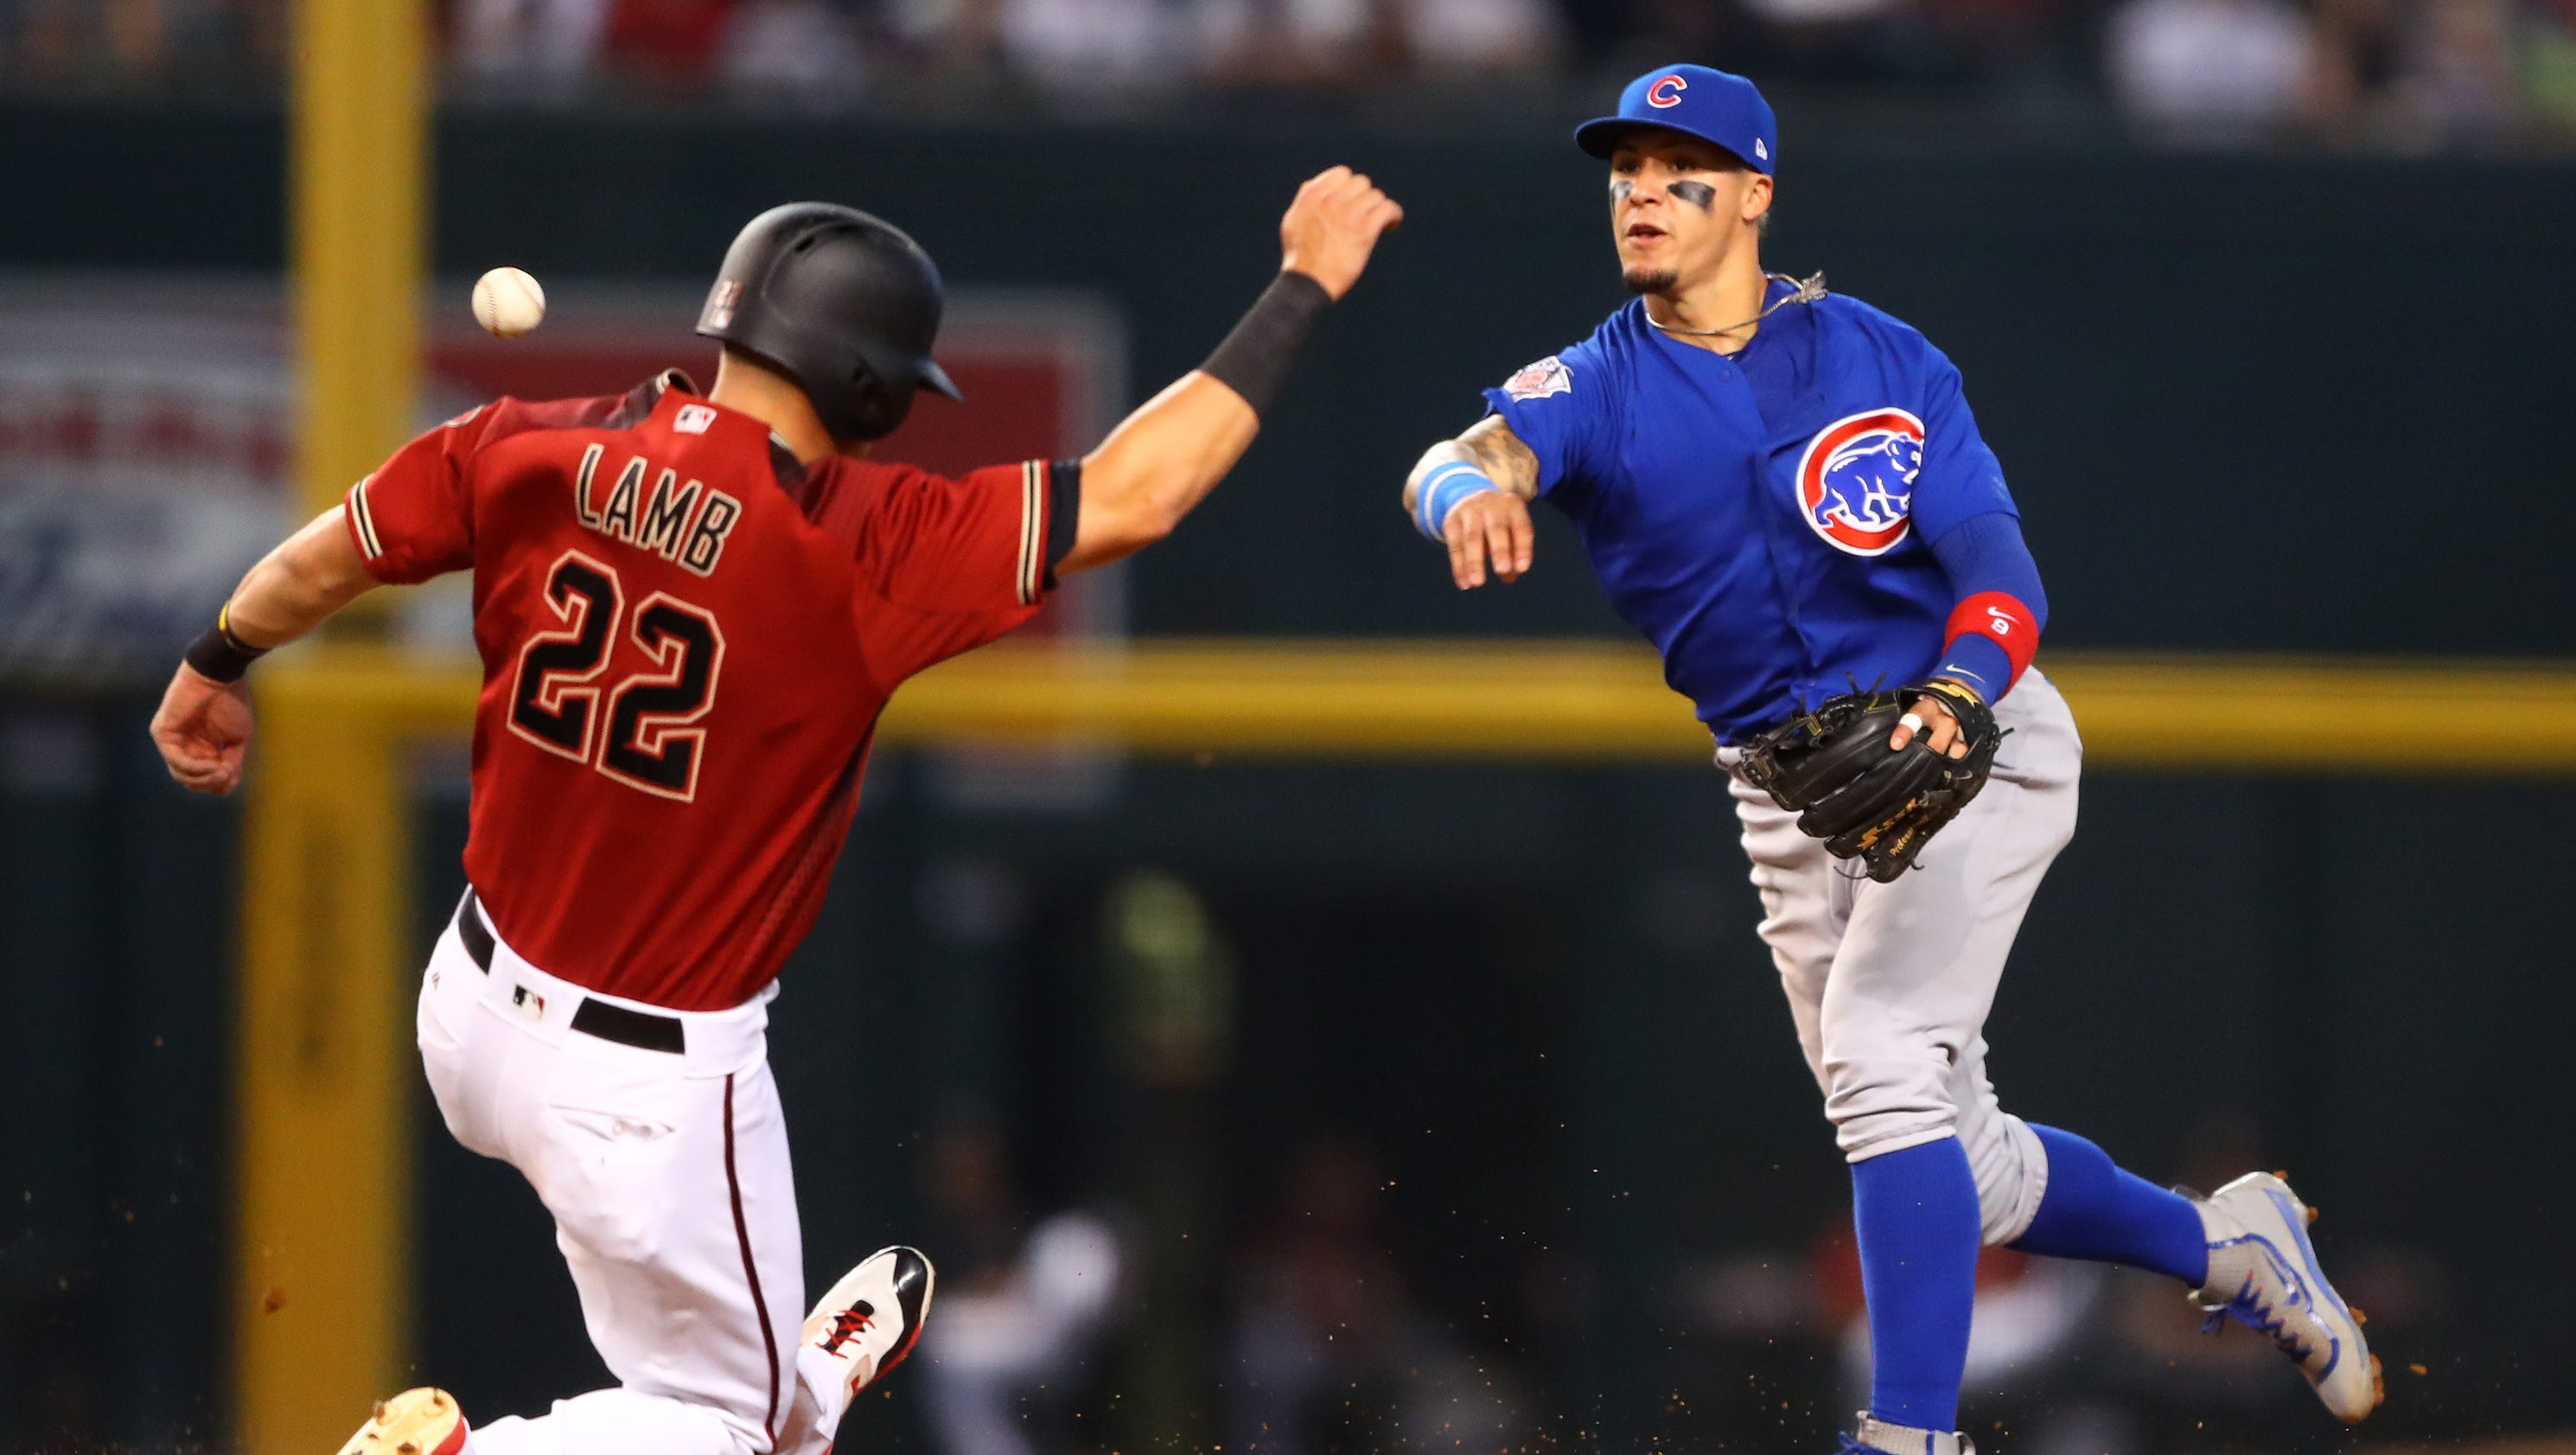 Cubs grab 1-game lead in NL Central over rival Cardinals